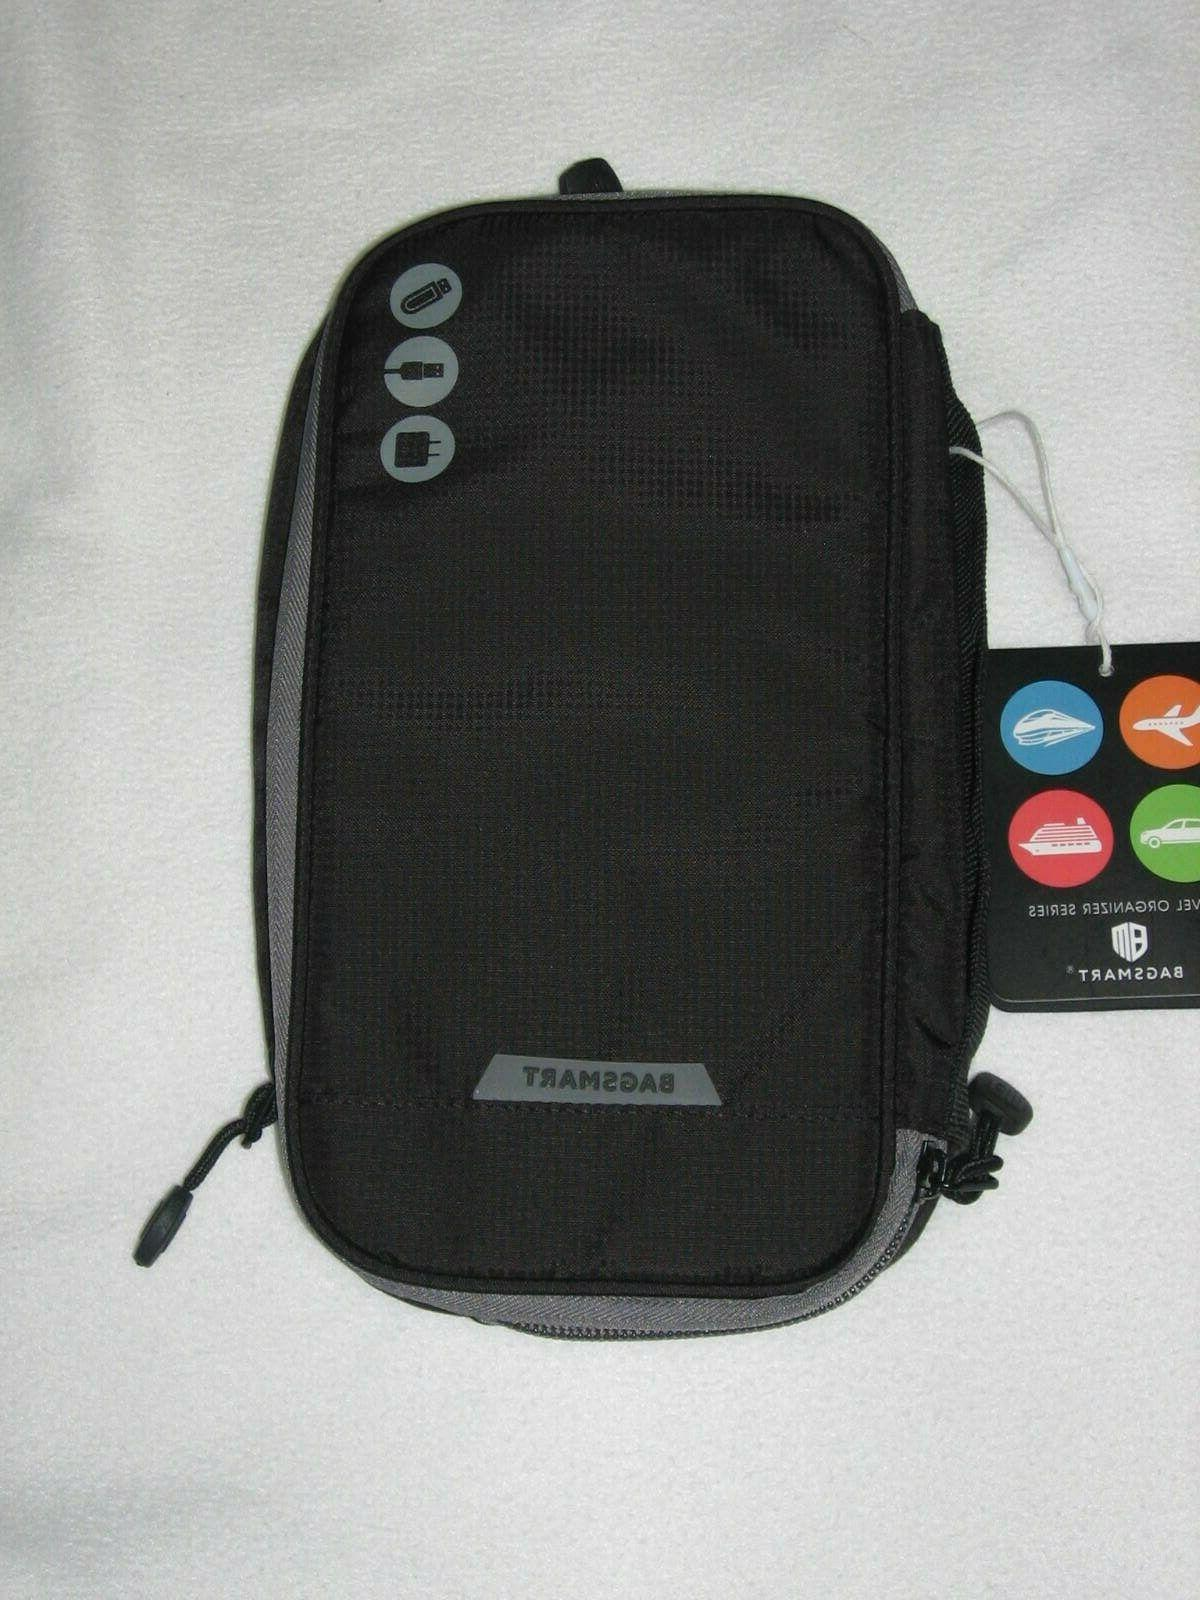 electronic organizer travel cable case bag 2